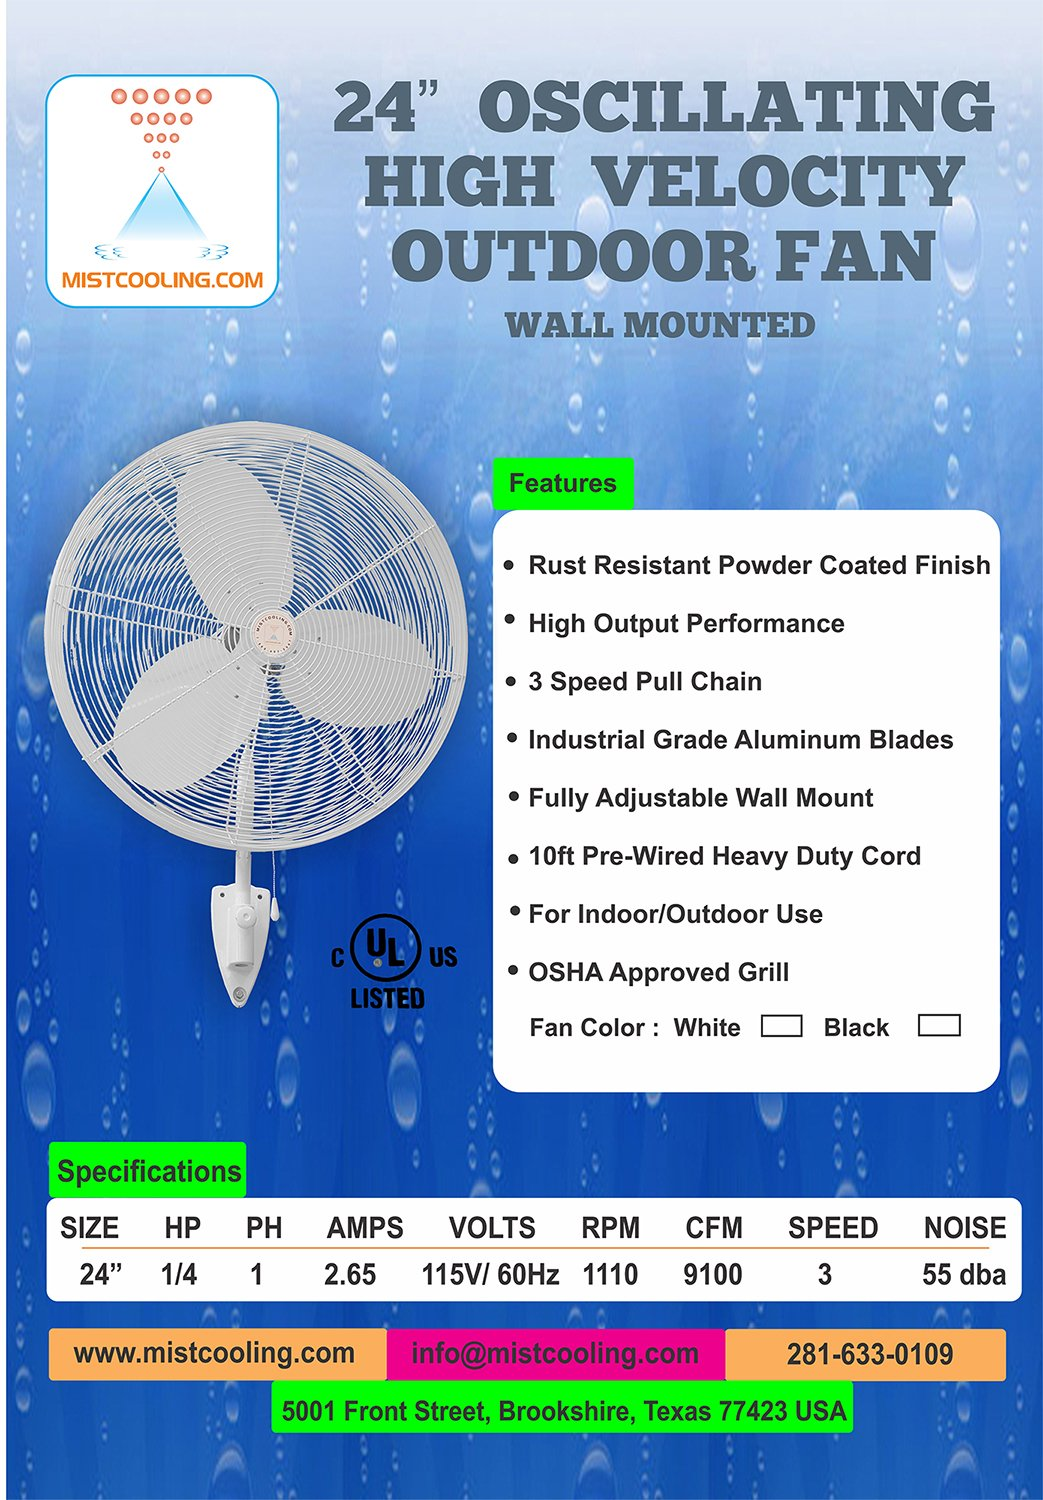 Mistcooling applications - Dust Suppression Misting System - For Construction Sites, Dump Sites, Industrial manufacturing sites - Portable Dust Suppression System (24 Inch Fan-250 PSI Pump)